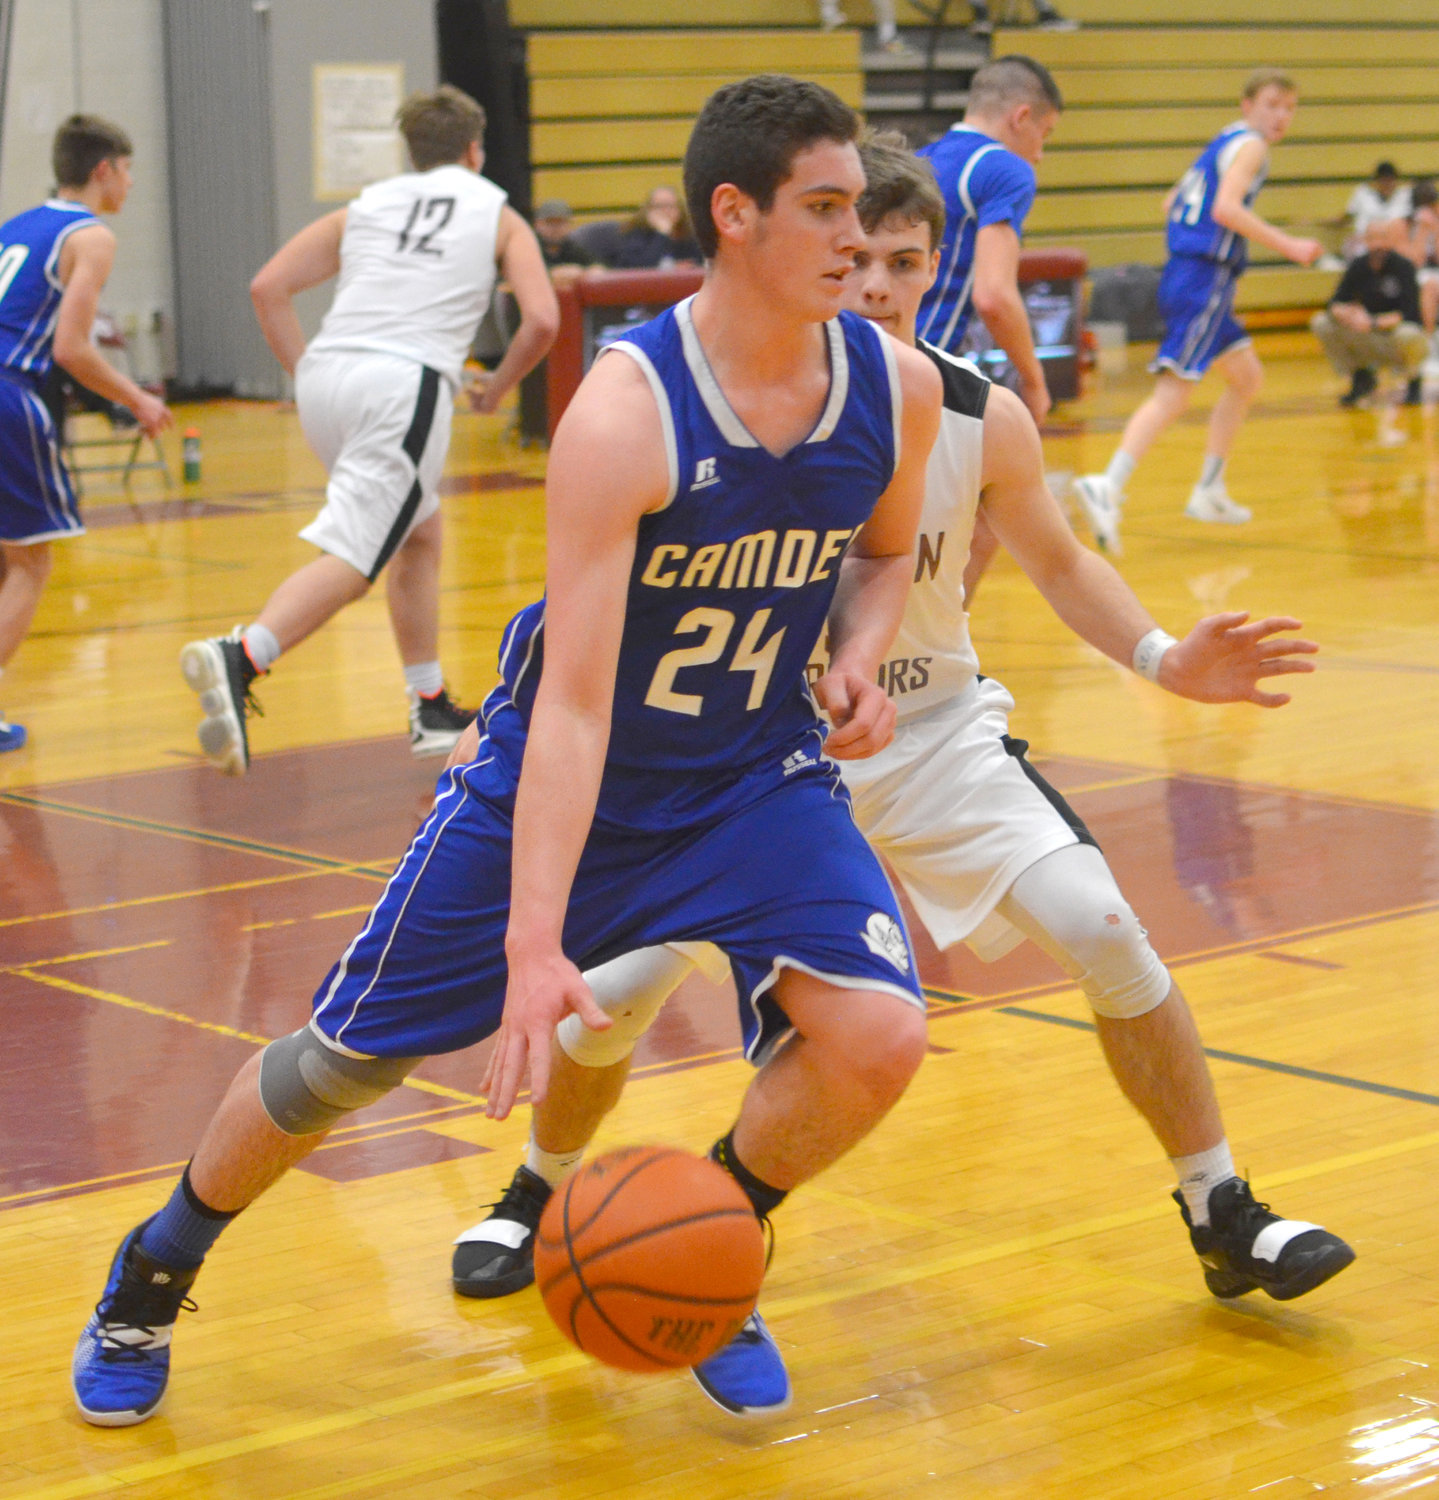 CLOSE DEFENSE — Camden's Joshua Leos tries to get past Clinton defender Tanner Deveans during Monday night's game in Clinton. The host Warriors scored a 50-33 victory. Game details were unavailable.